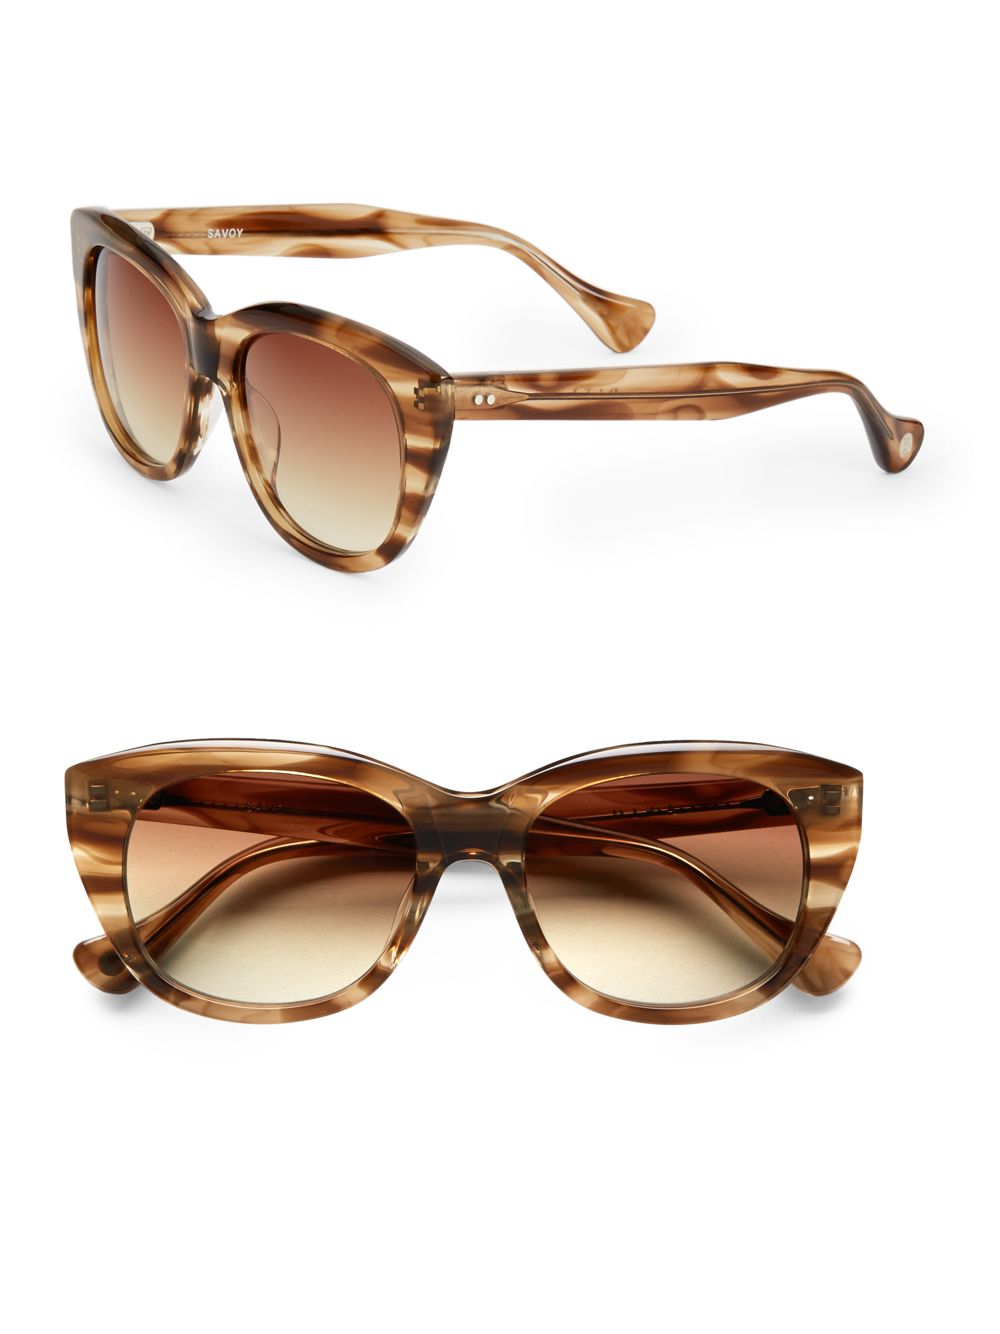 Dita eyewear Savoy Cat's-eye Sunglasses in Brown | Lyst Dita Eyewear